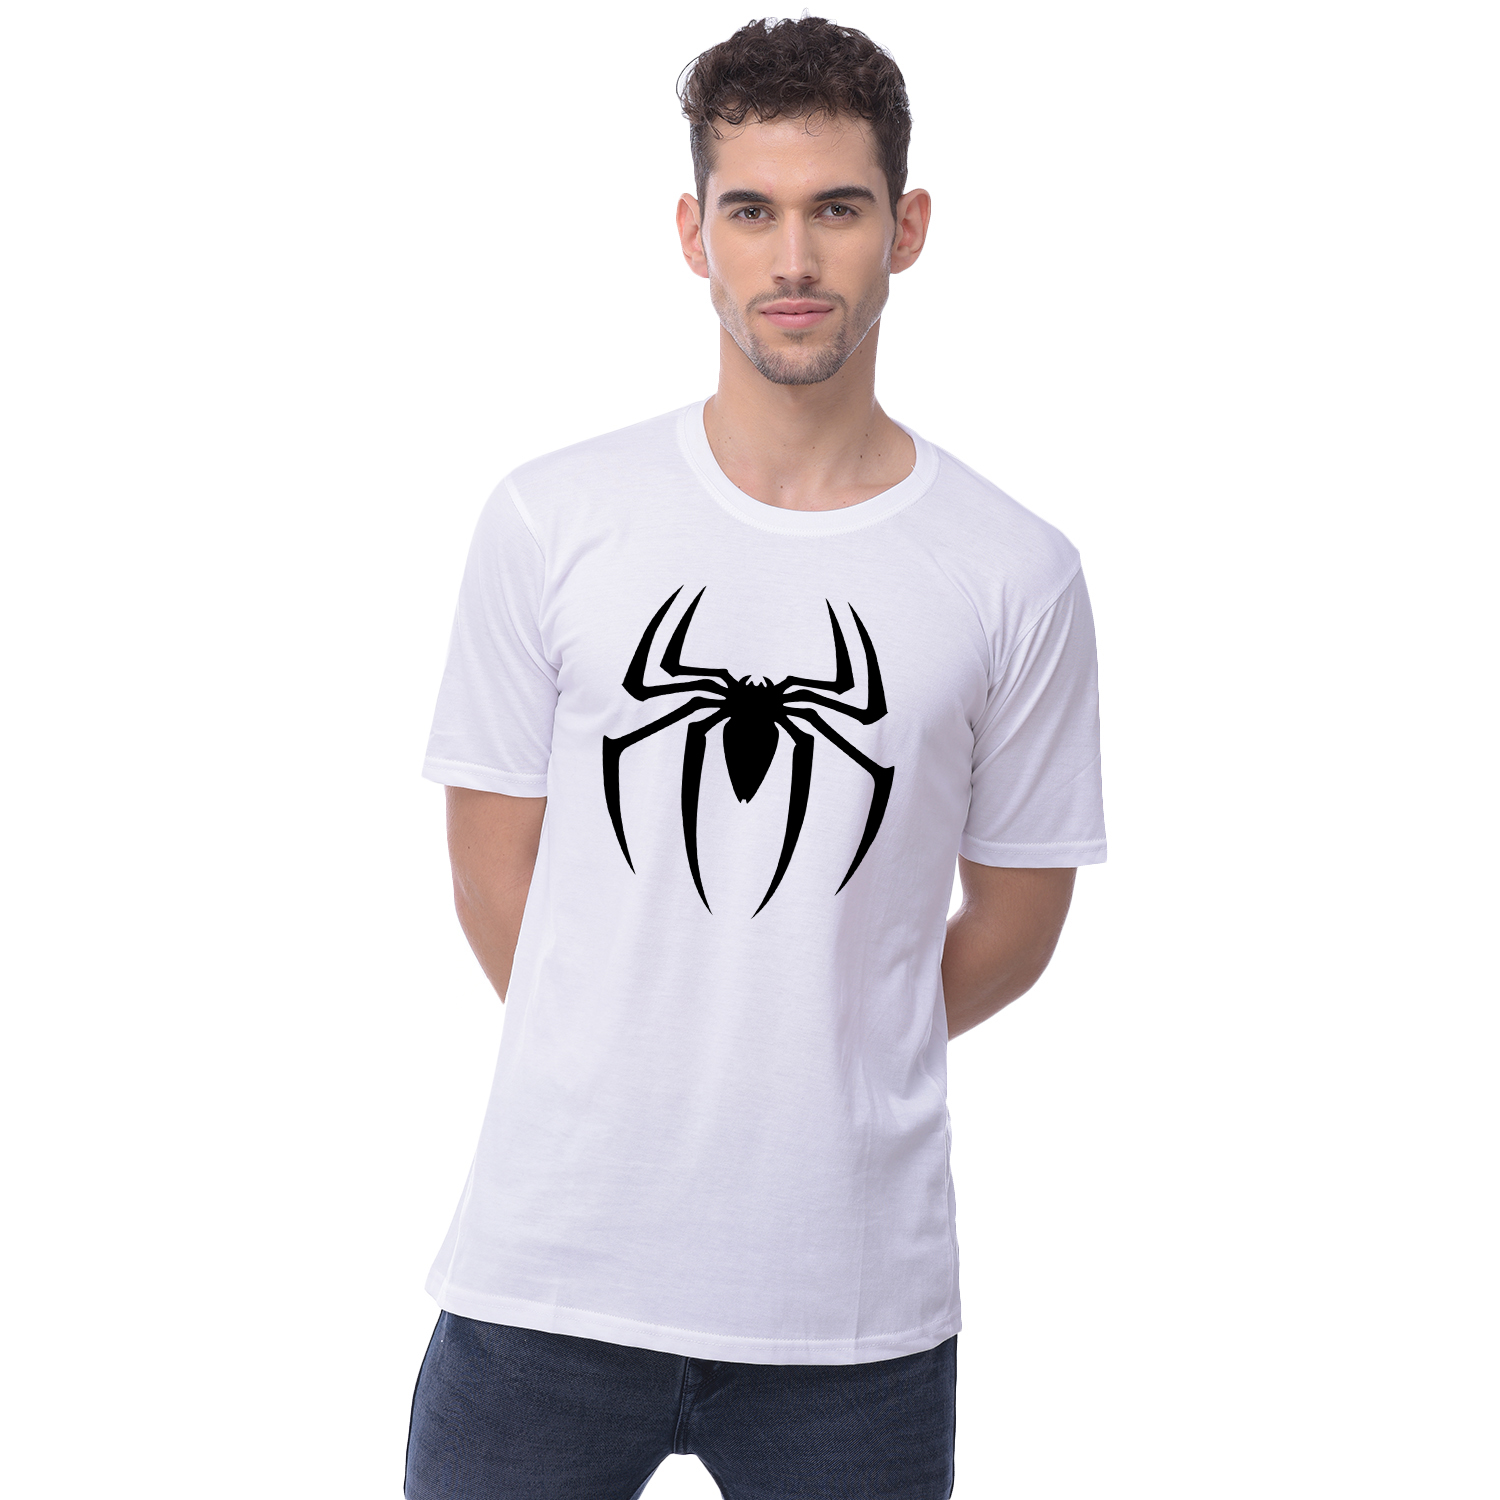 Harshys White Dry Fit Printed T Shirt For Men